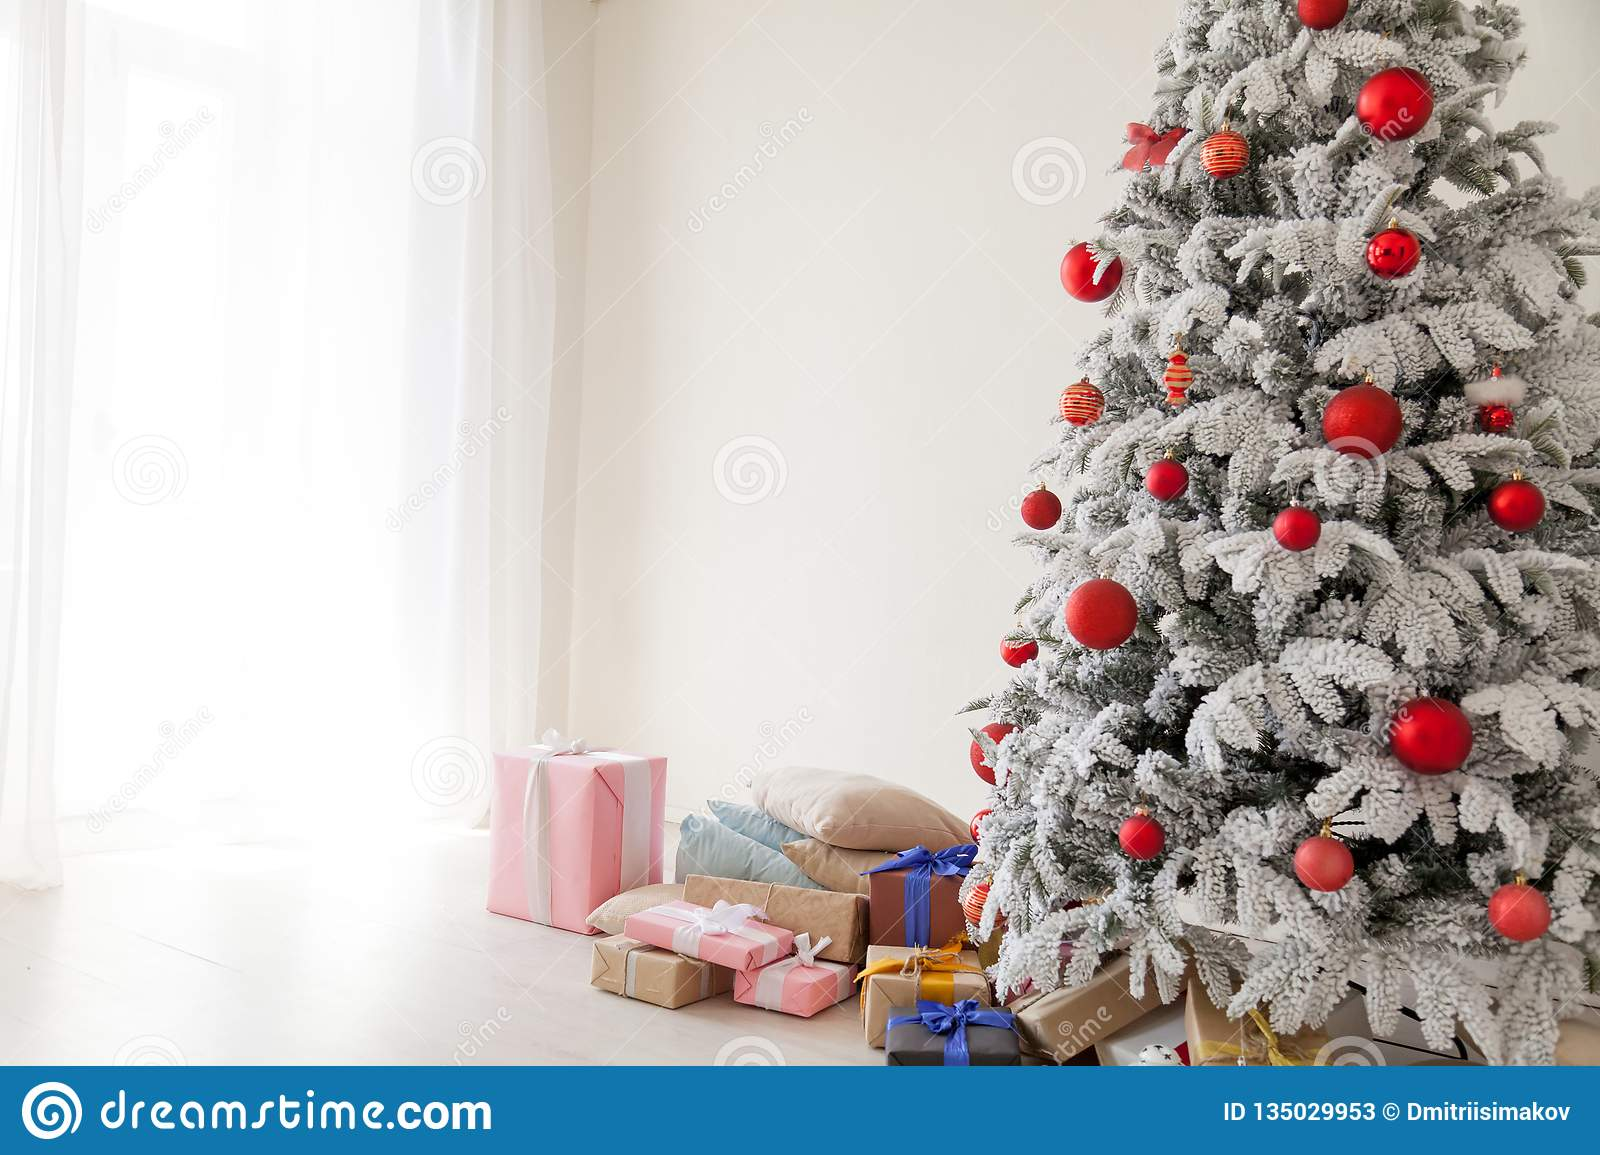 happy holidays christmas new year tree presents stock image image of realism bright 135029953 https www dreamstime com happy holidays christmas new year tree presents image135029953